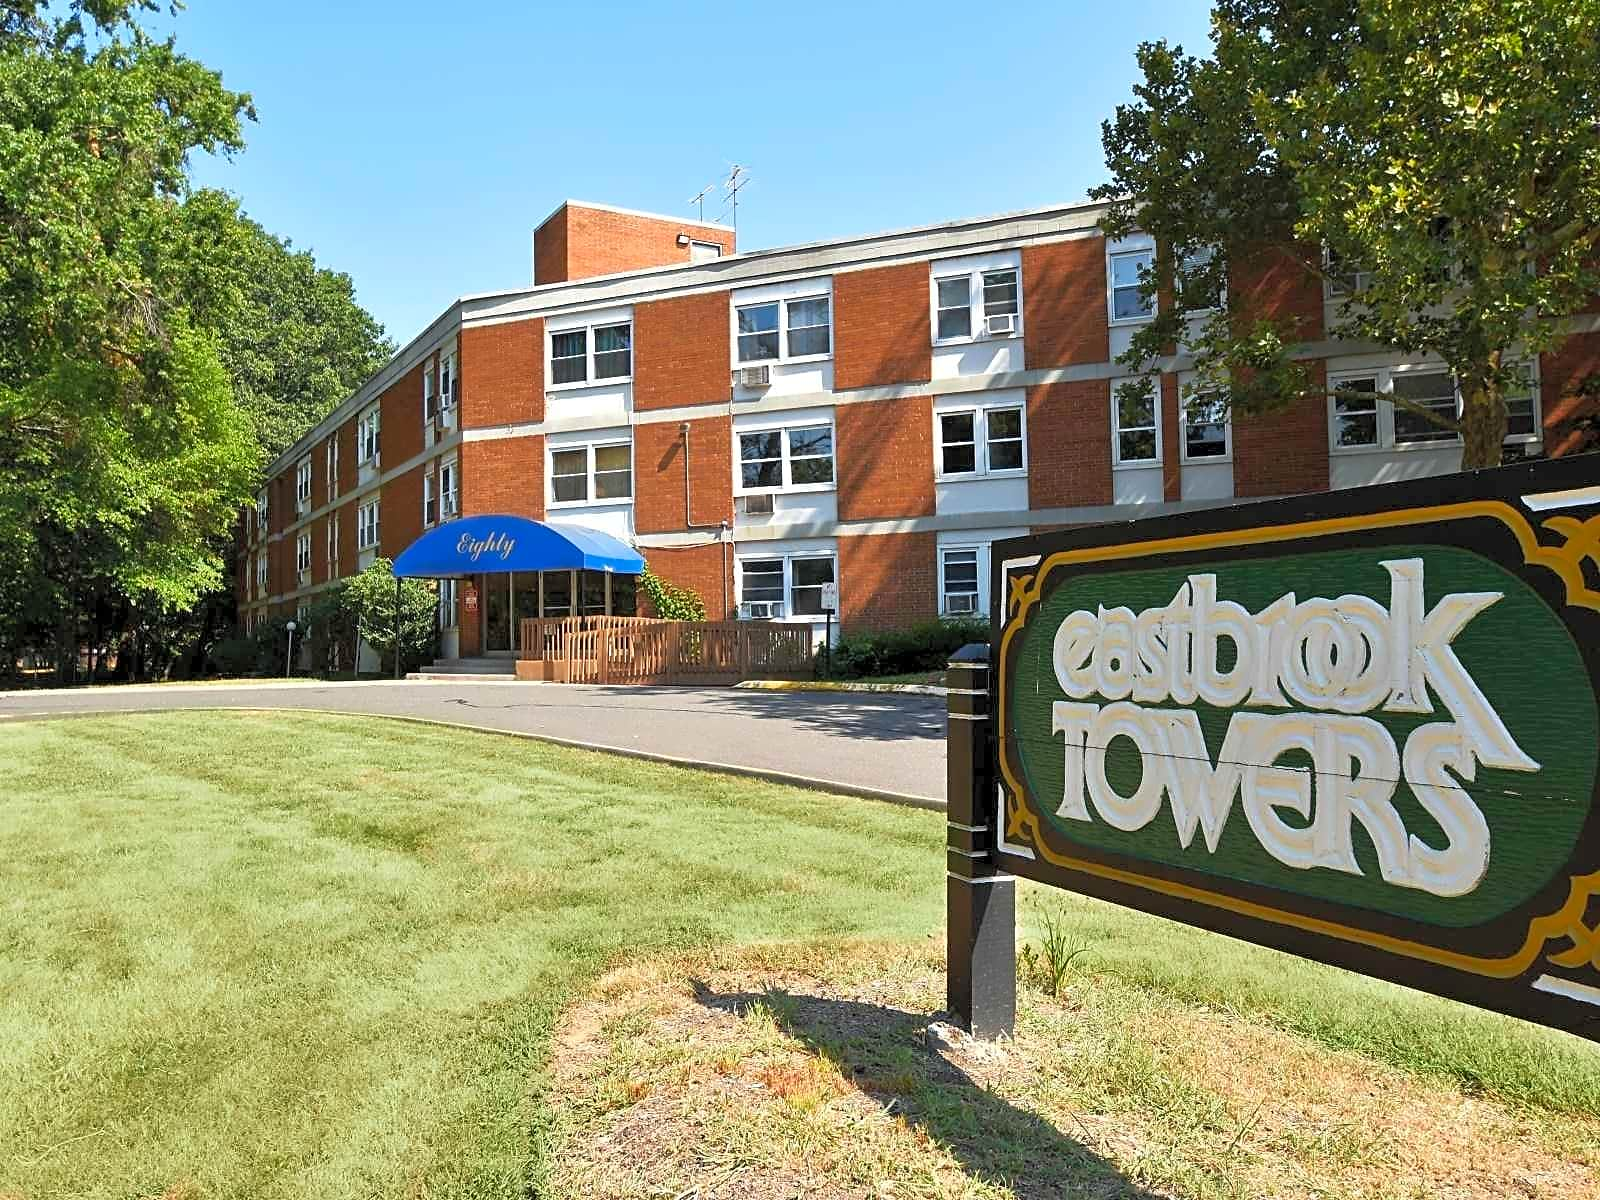 Eastbrook Towers Apartments - East Hartford, CT 06118